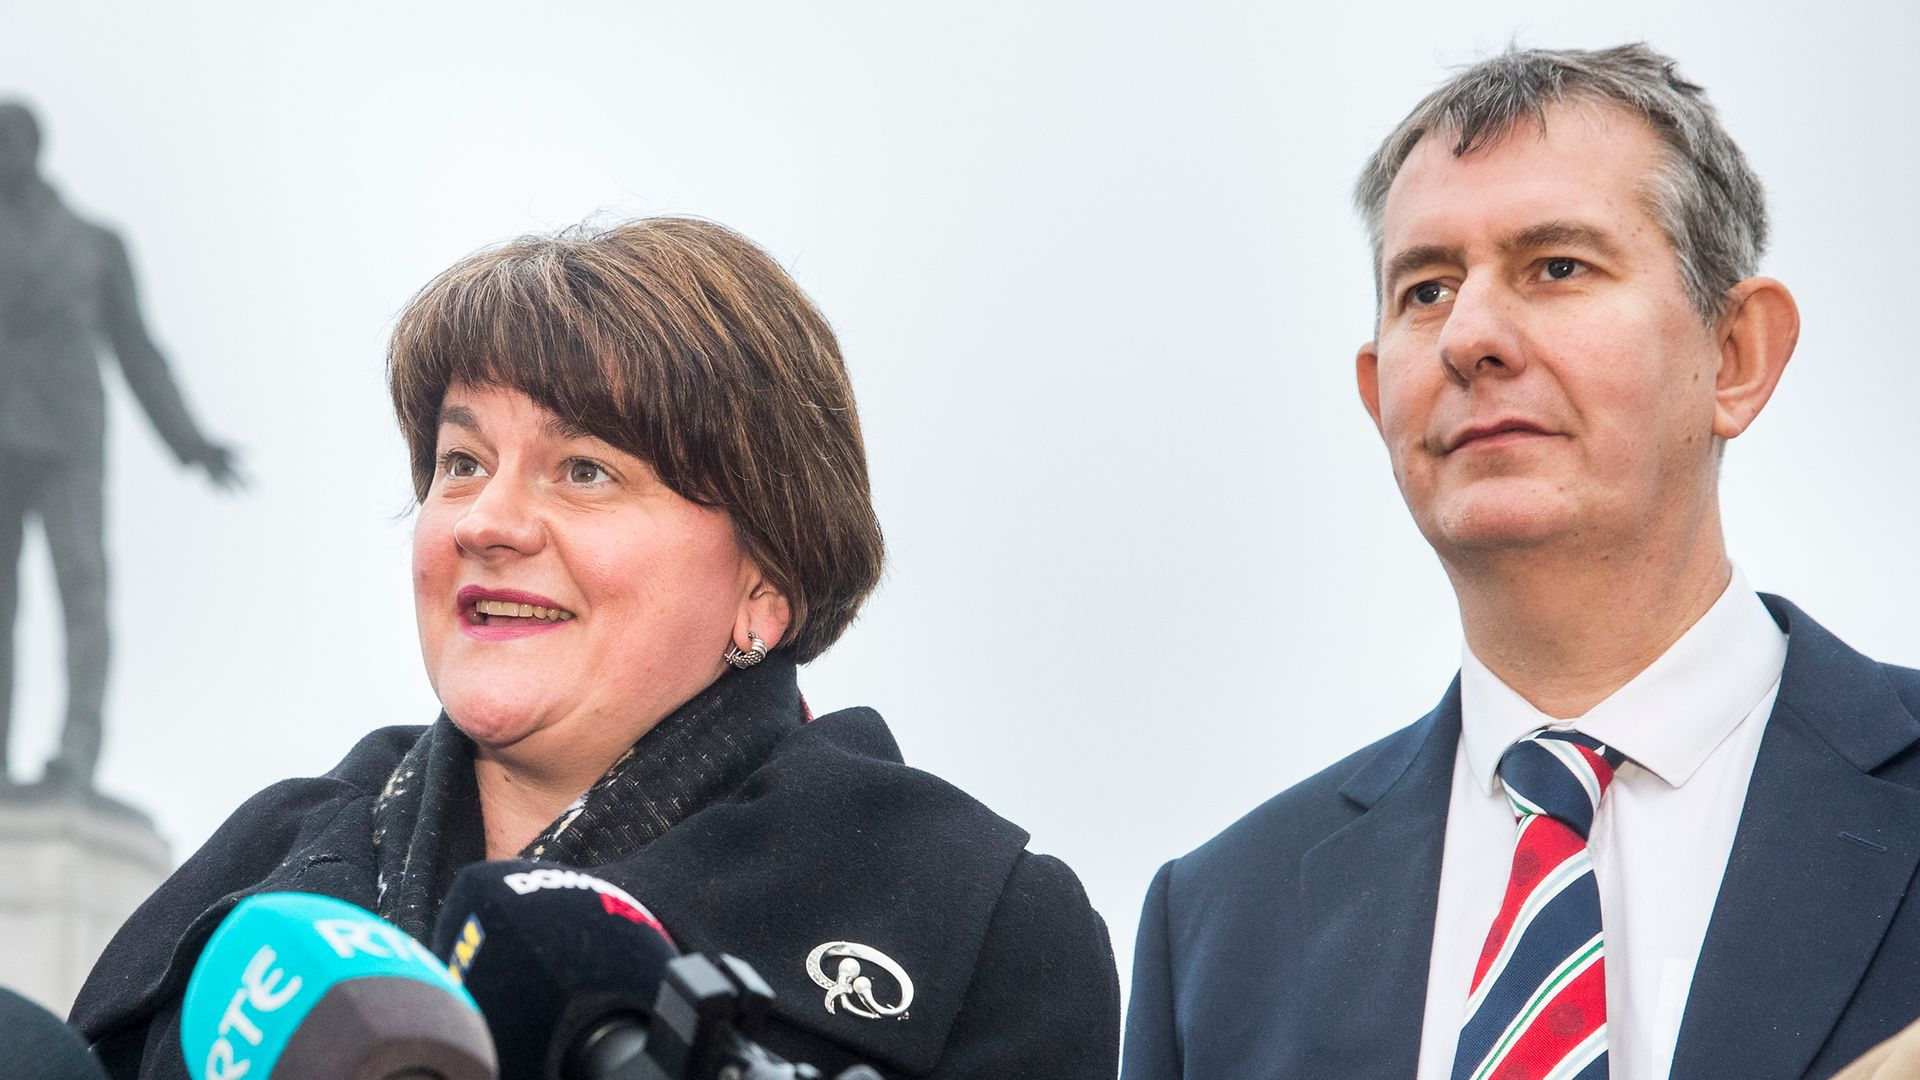 DUP outgoing leader Arlene Foster and incoming leader Edwin Poots - Credit: PA